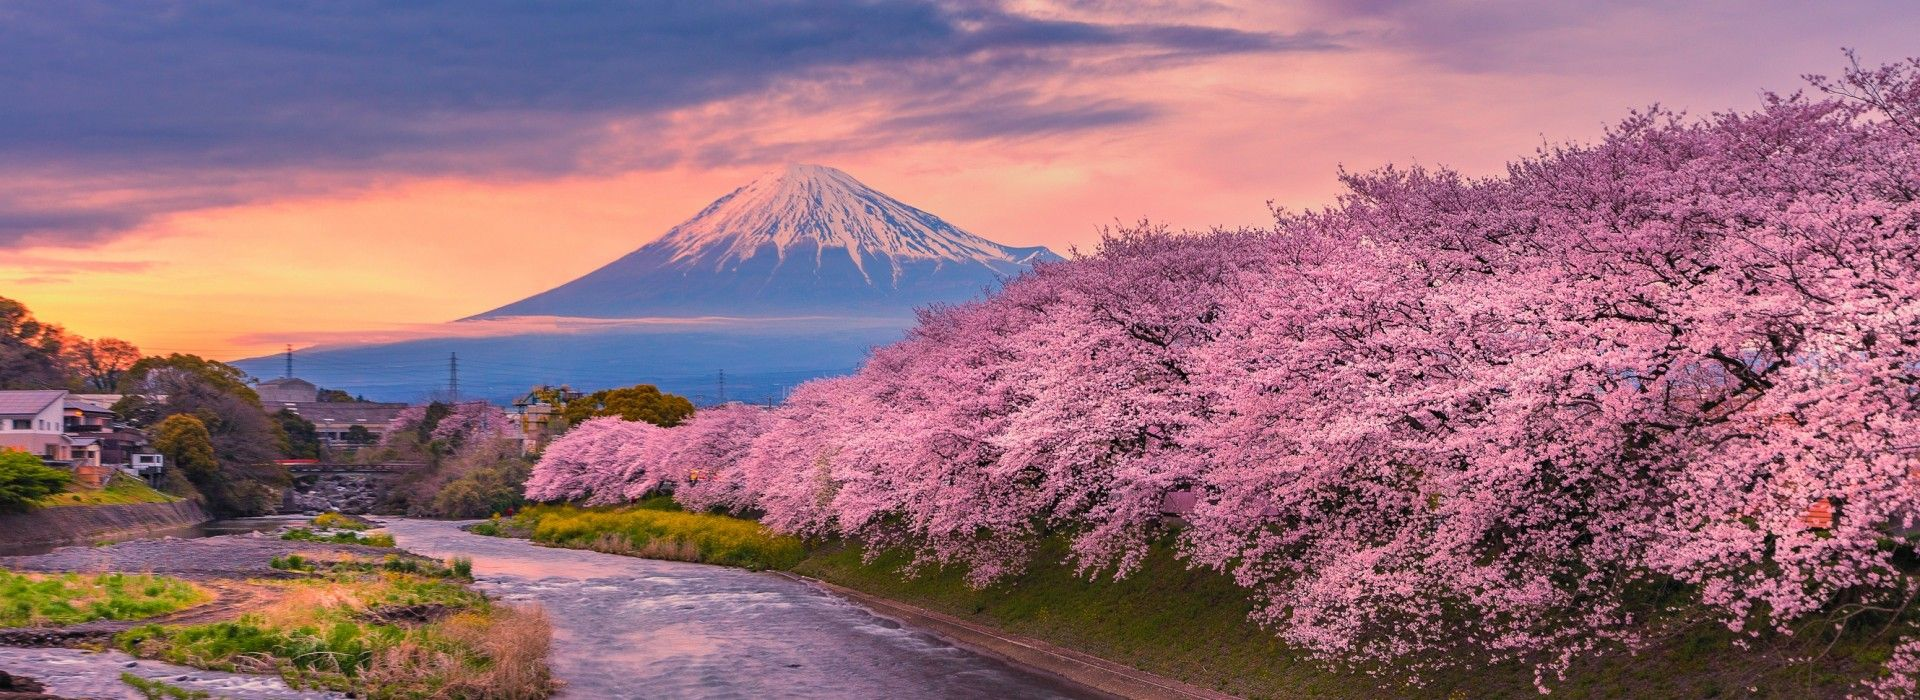 Train tours in Japan